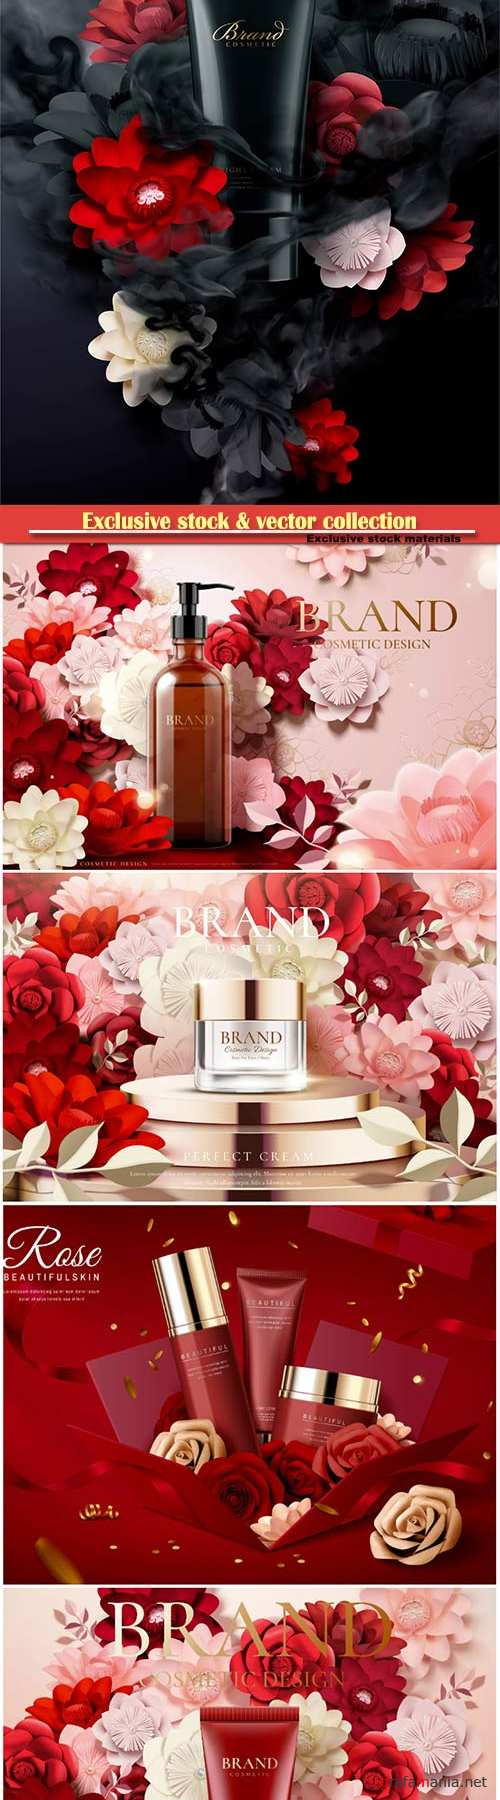 Cosmetic set ads with paper flowers in 3d illustration